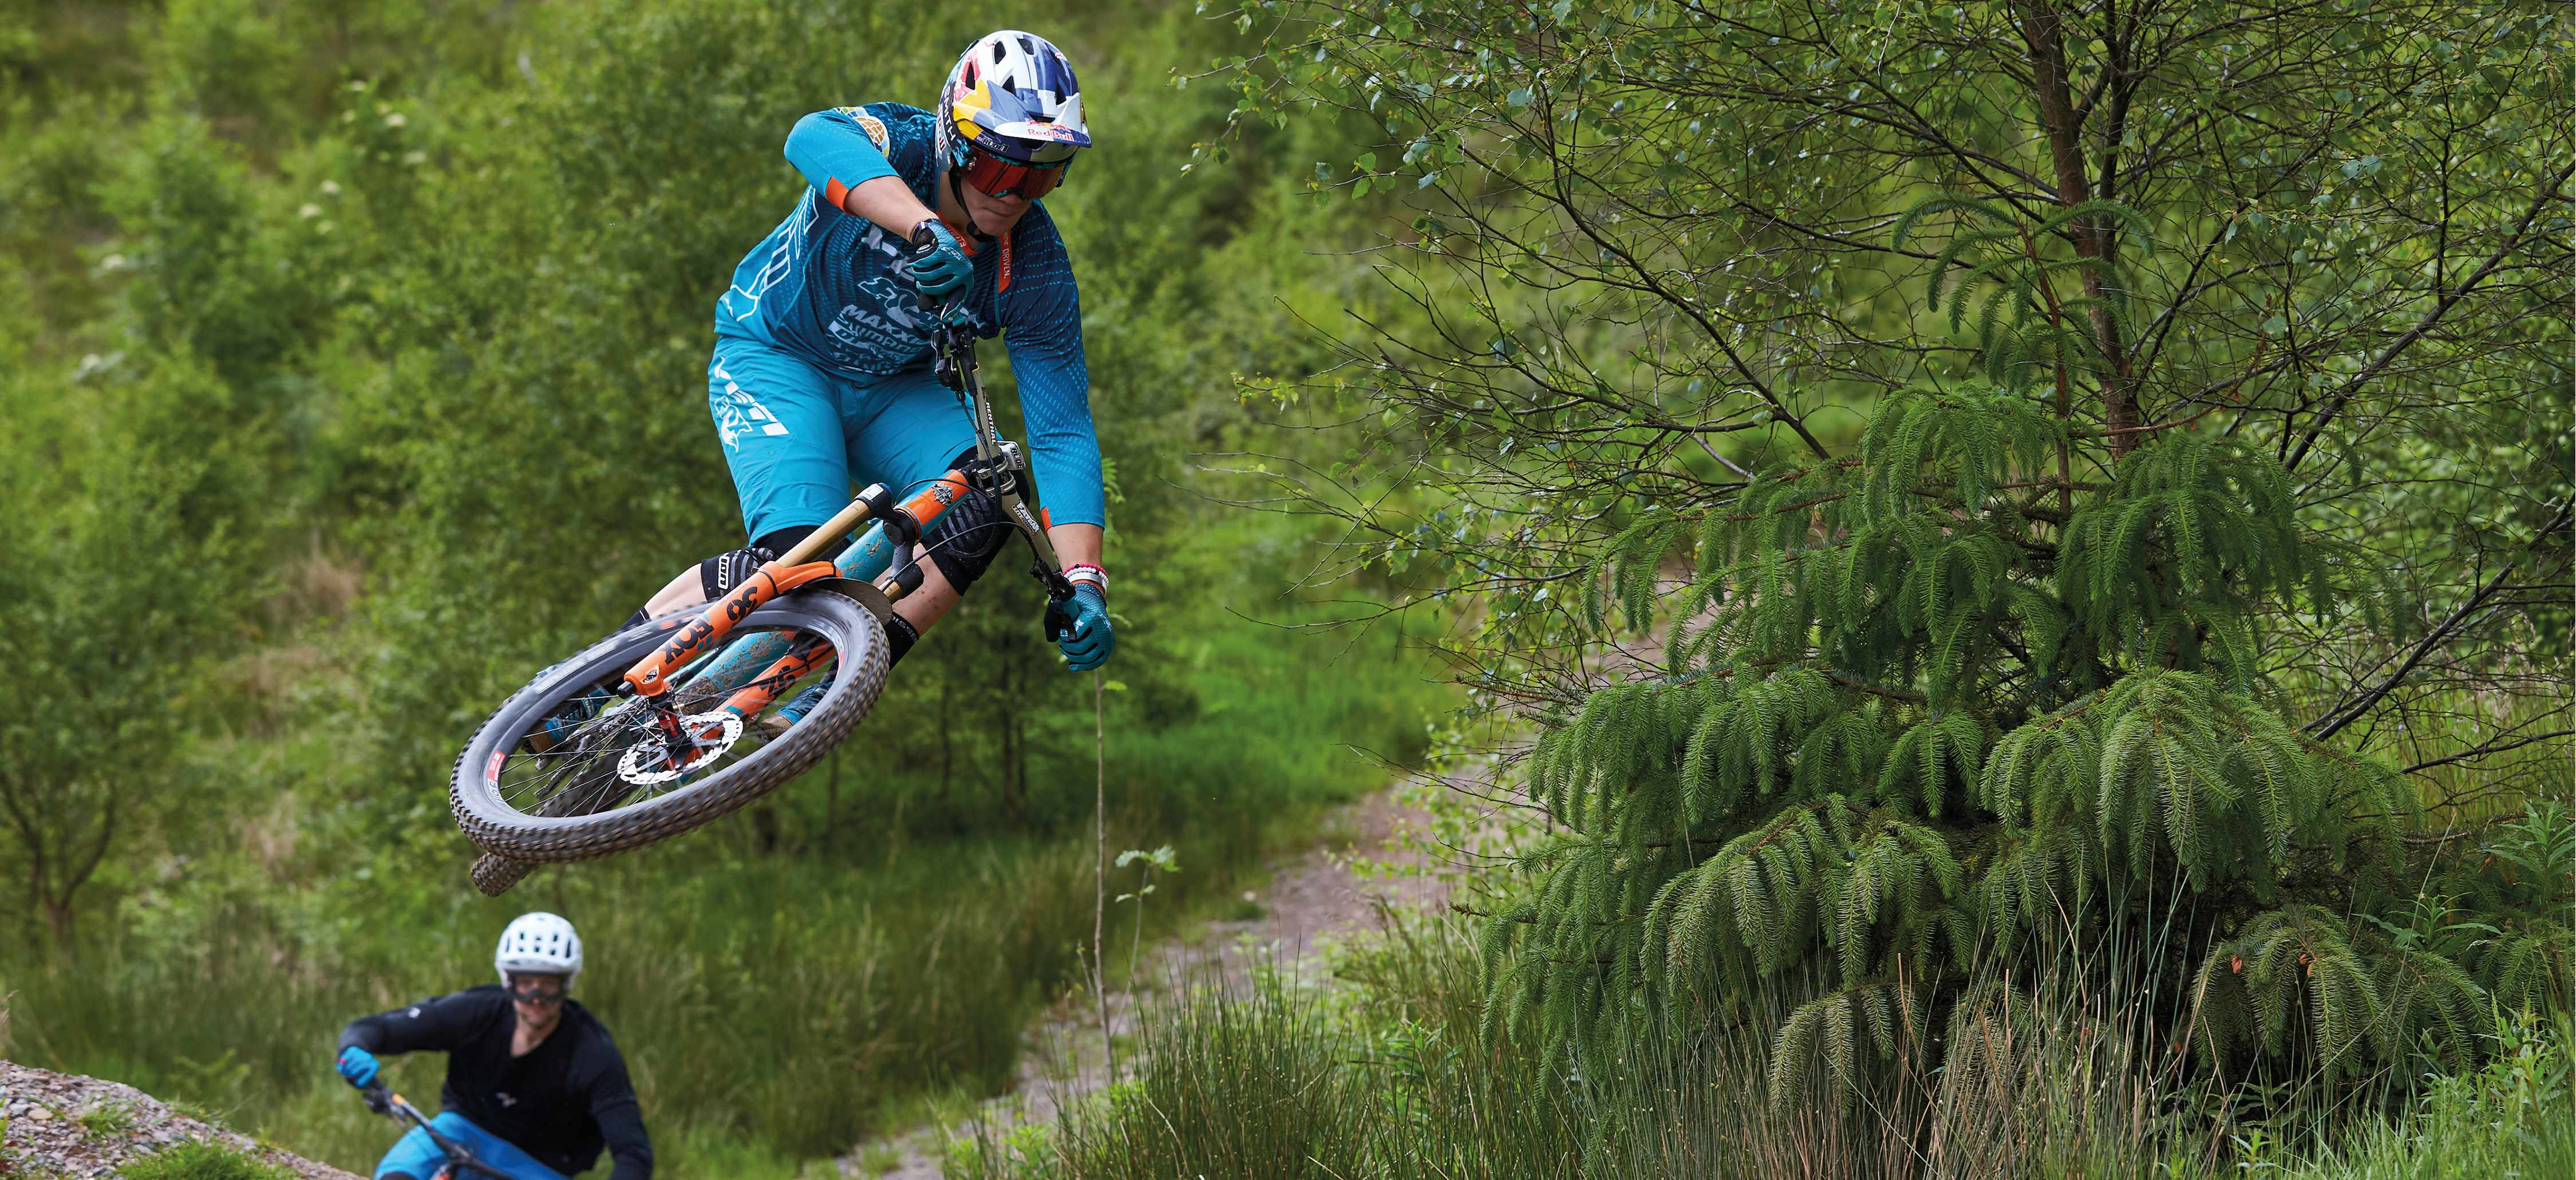 ,during the Leogang UCI MTB World Cup DH round three.